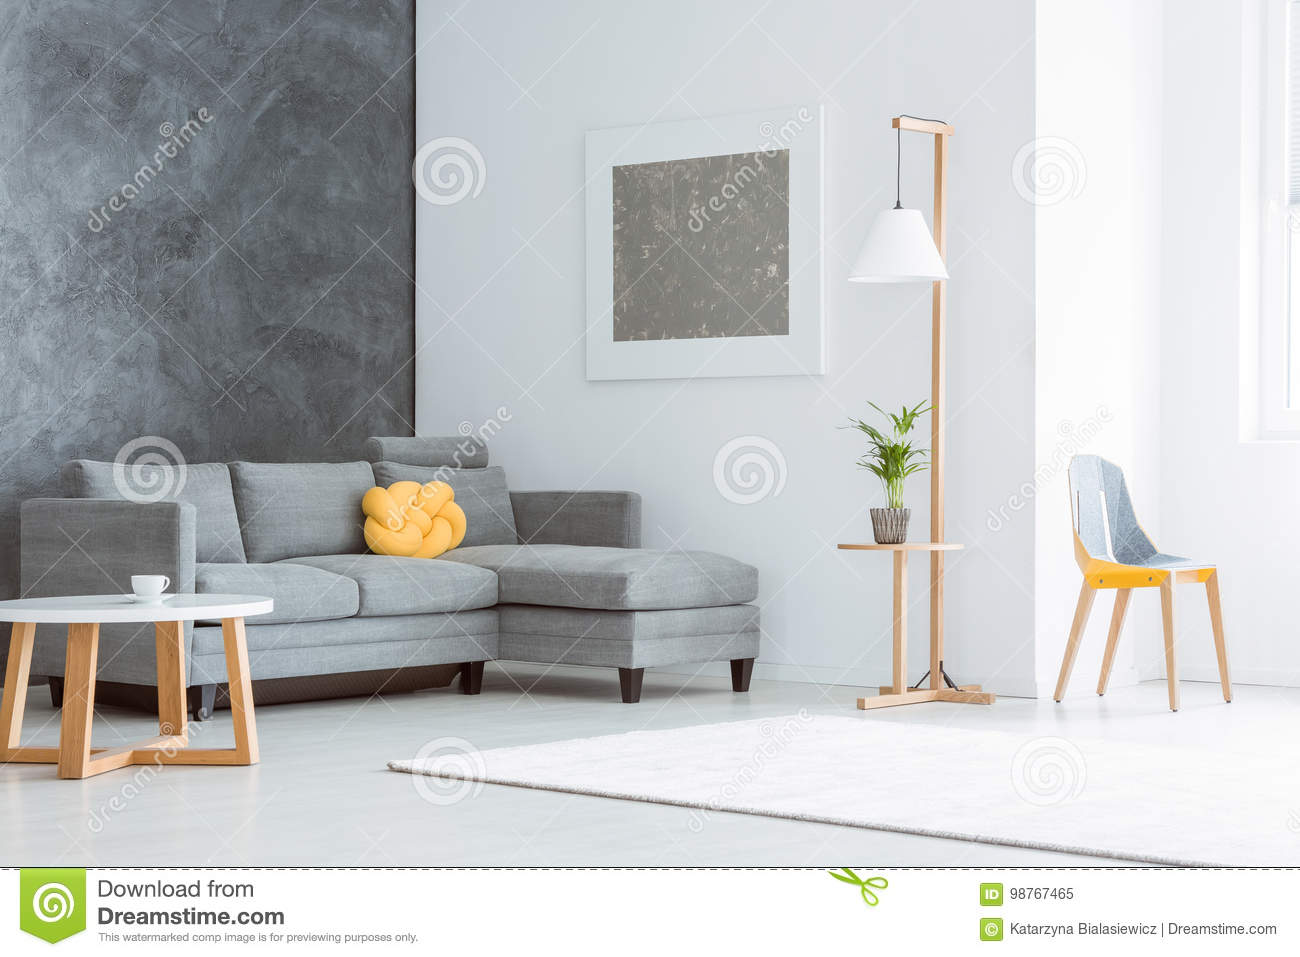 Spacious Living Room With Painting Stock Image - Image of minimal ...